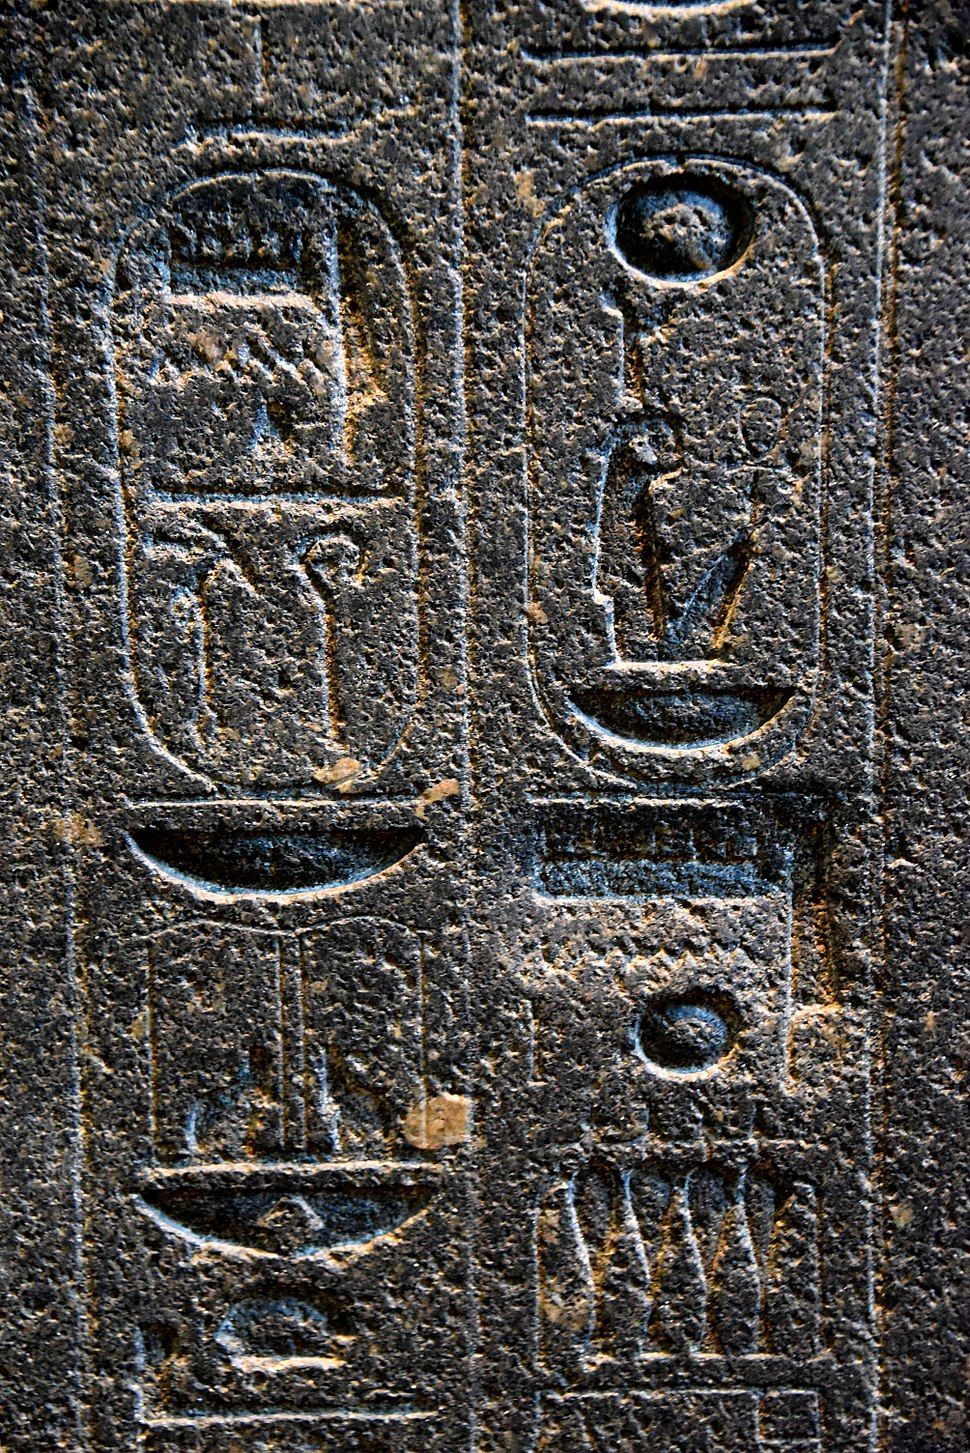 Hieroglyphs on the backpillar of Amenhotep III's statue. There are 2 places where Akhenaten's agents erased the name Amun, later restored on a deeper surface. The British Museum, London